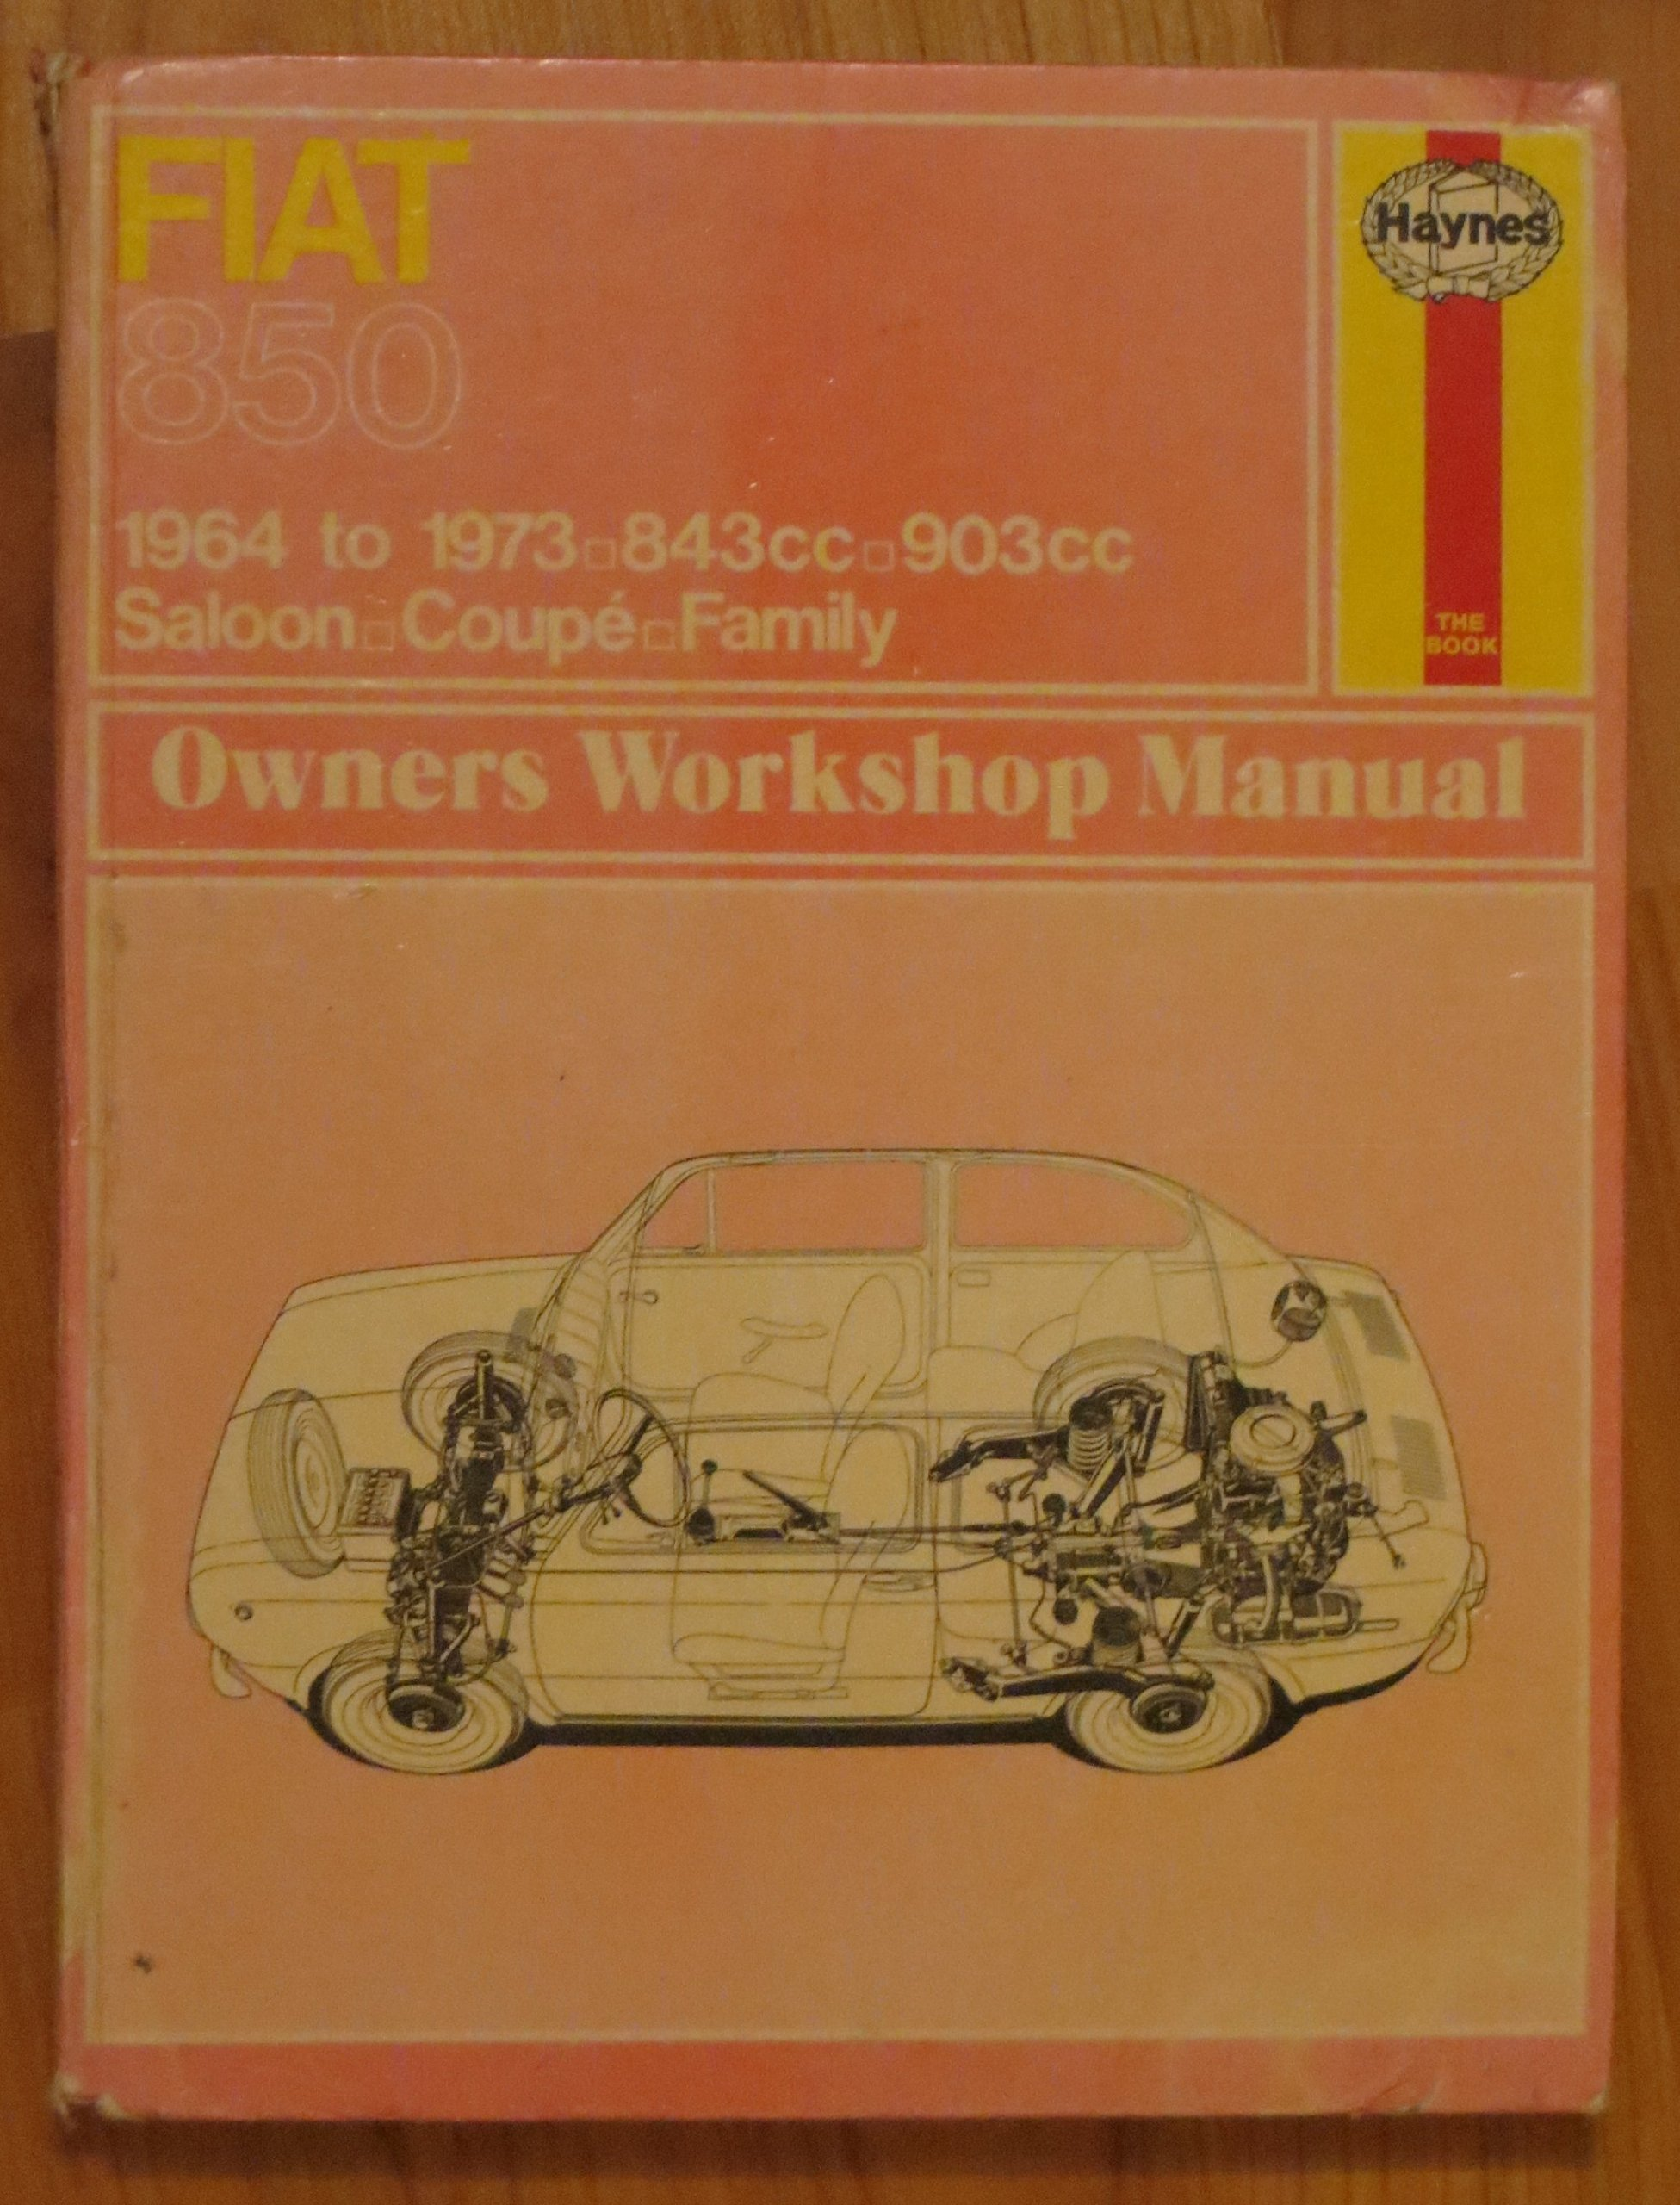 buy fiat 850 owner s workshop manual service repair manuals book rh amazon in Fiat 124 Fiat 850 Abarth